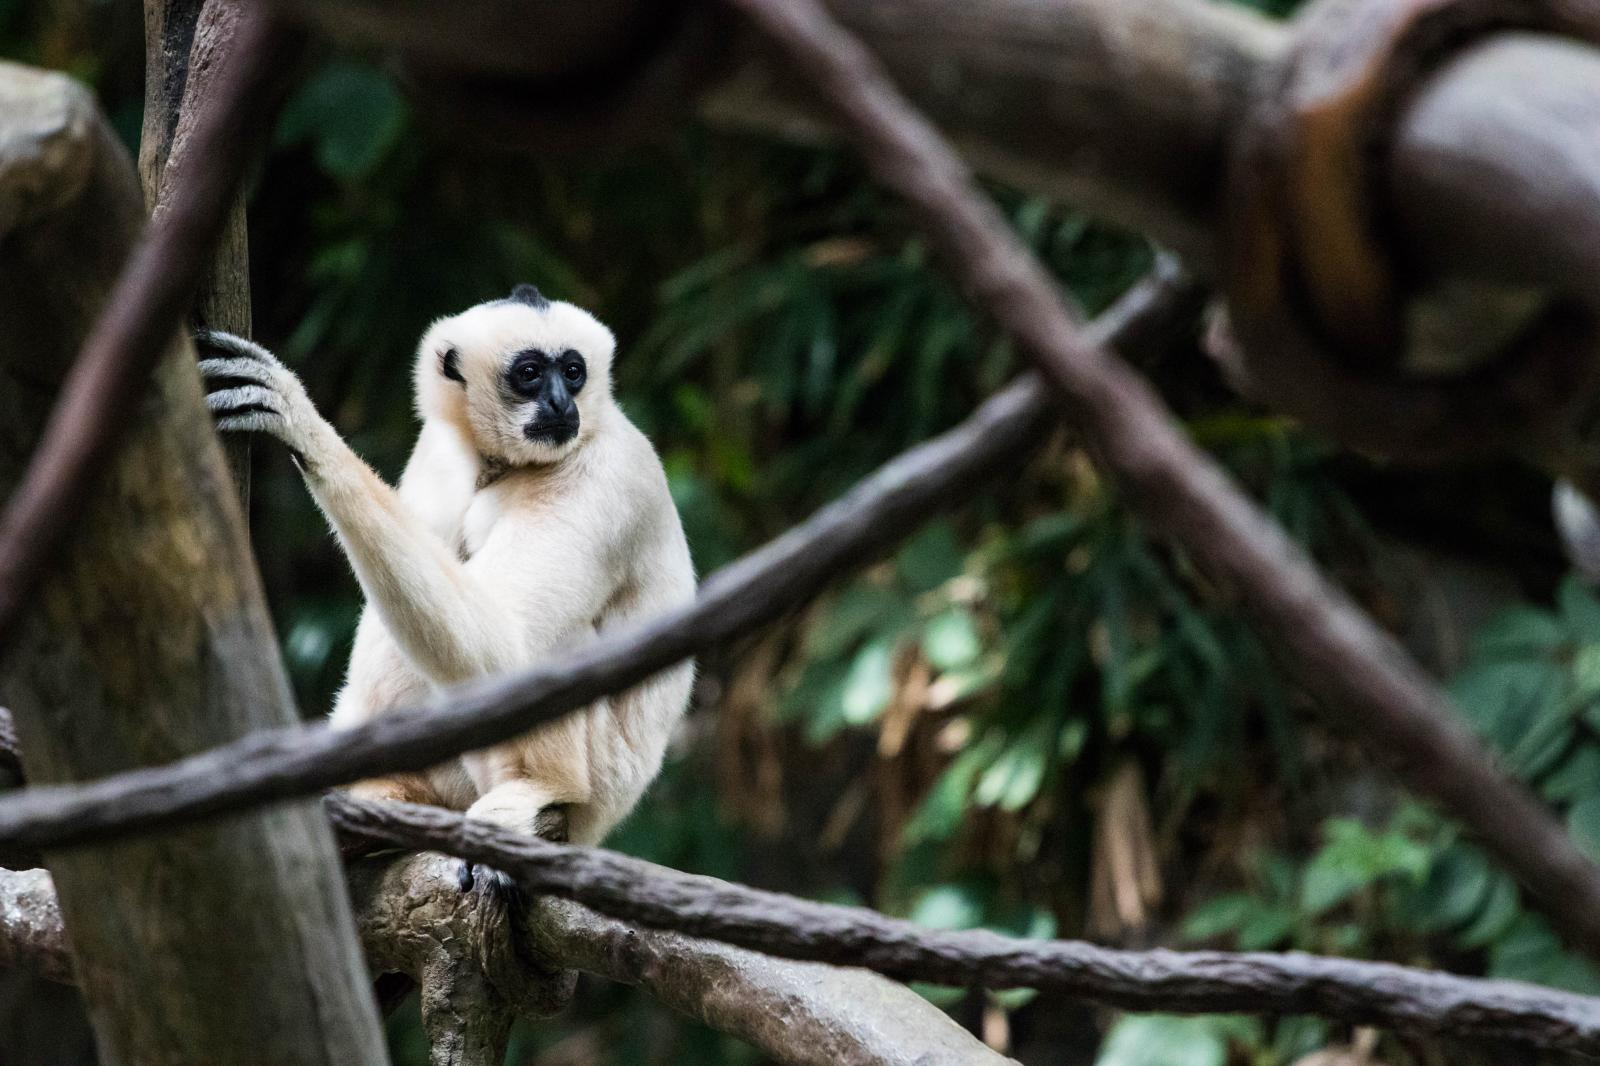 Female white-cheeked gibbon located in the Minnesota Zoo.